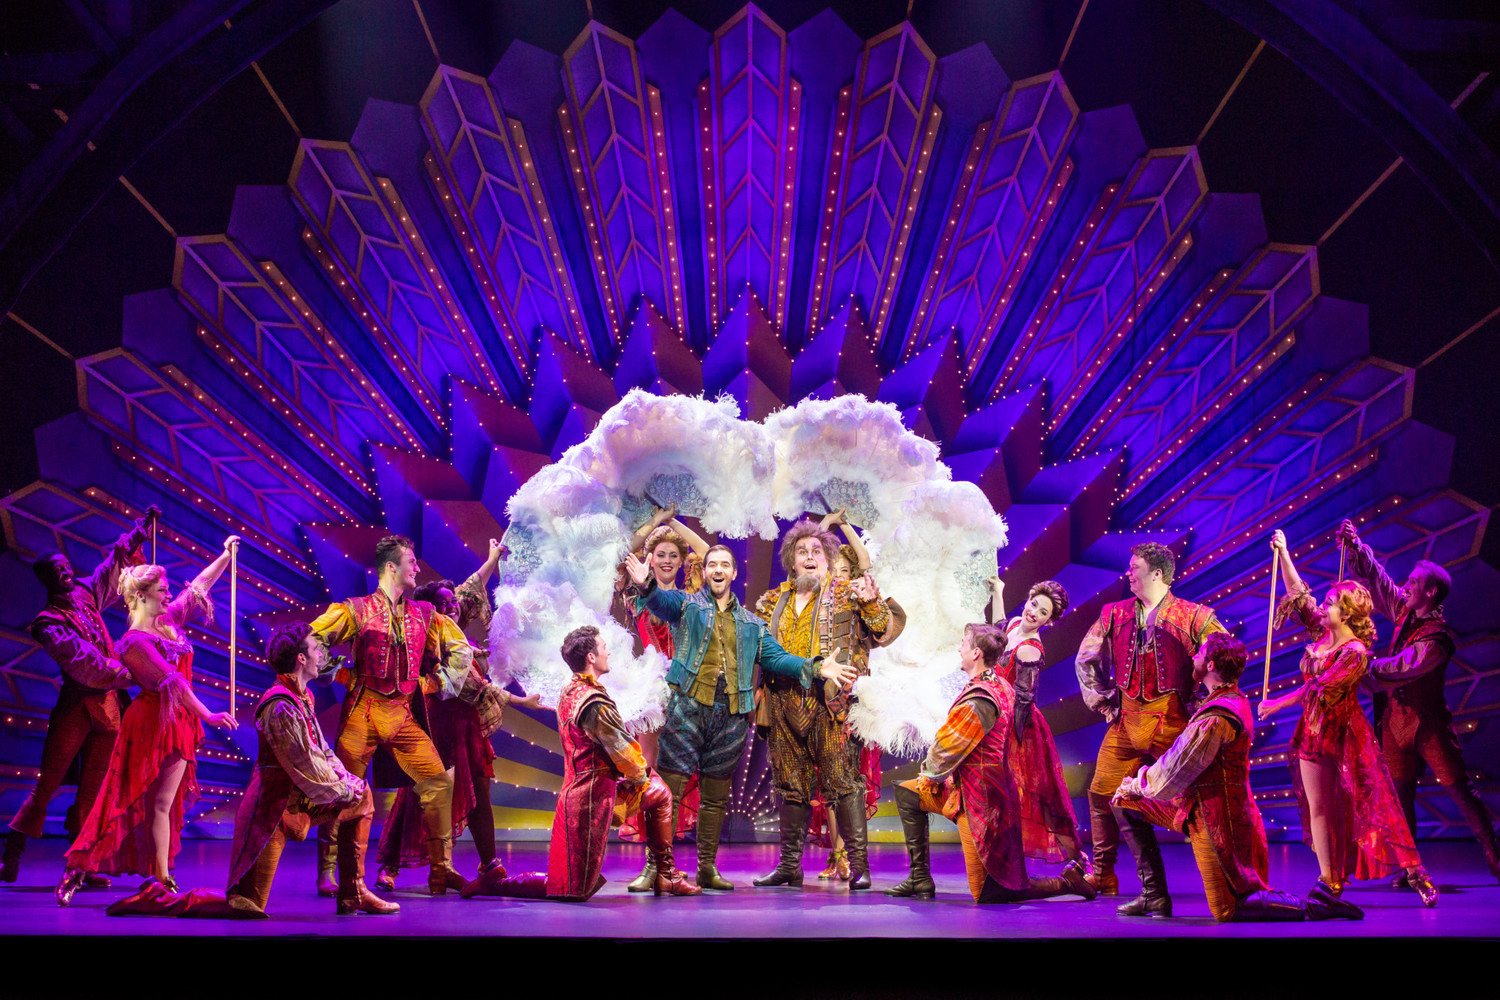 BWW Interview: A Sneak Peak at SOMETHING ROTTEN! with Matthew Janisse